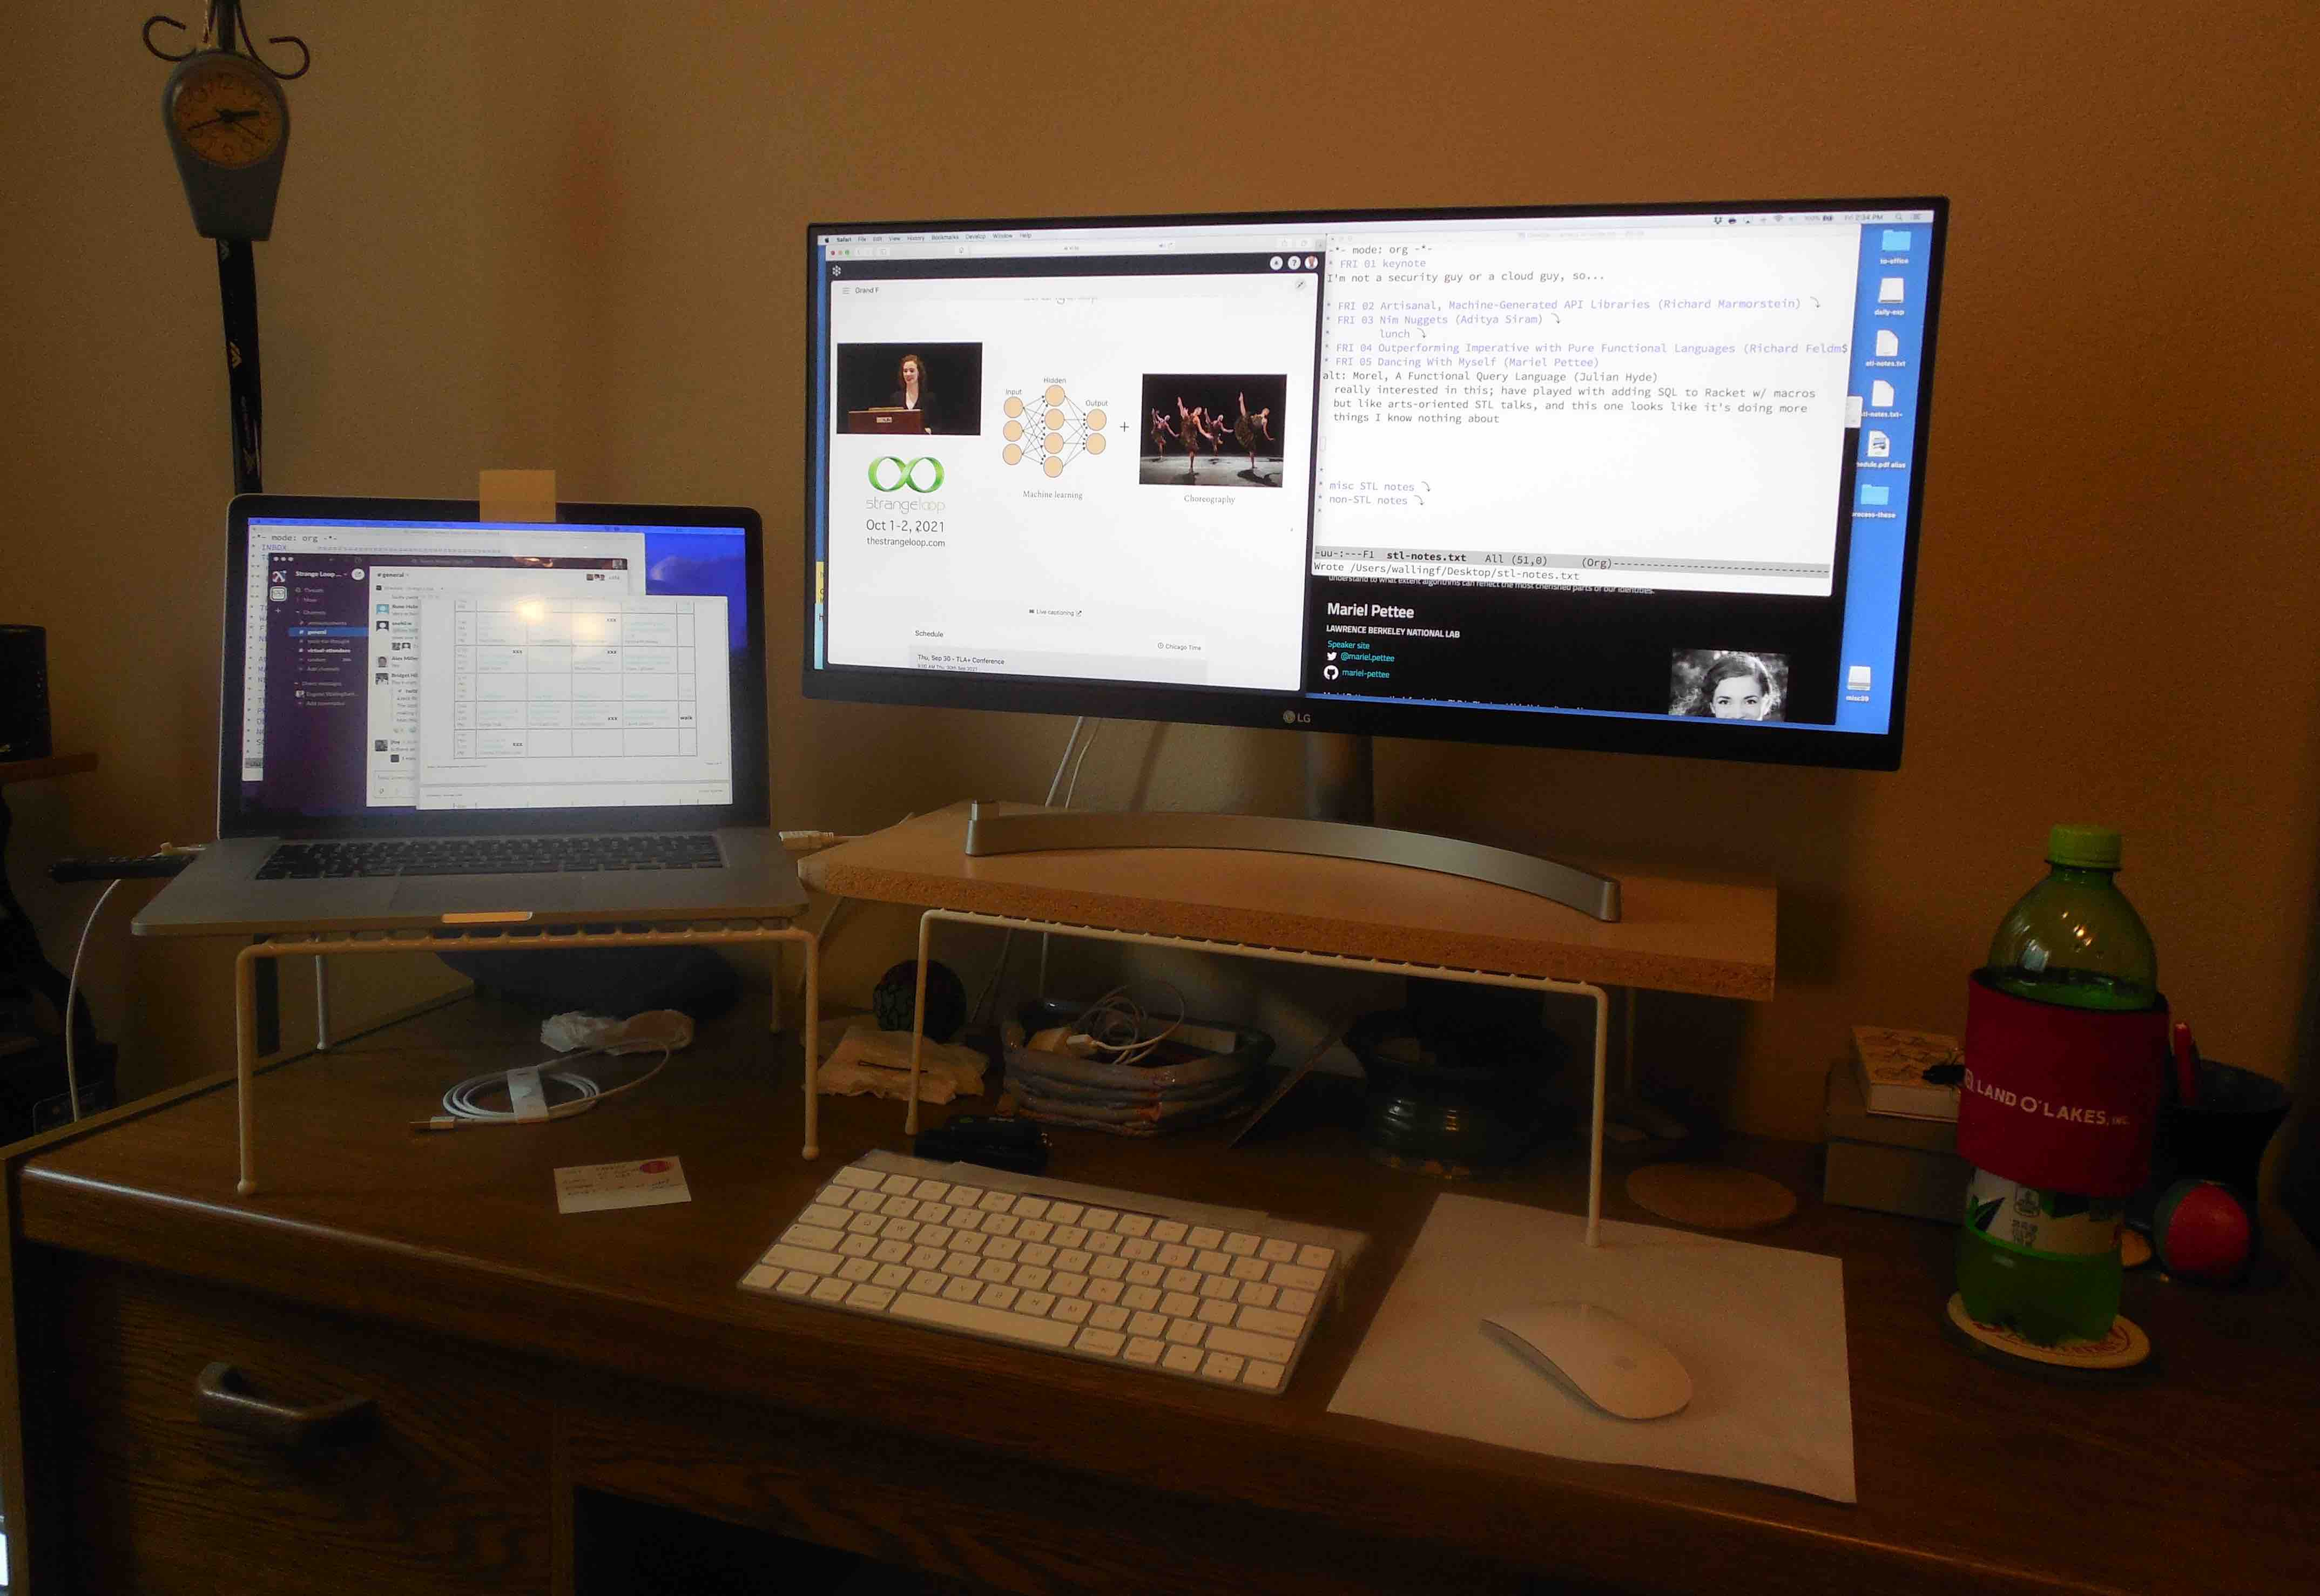 my Strange Loop 2021 home set-up, with laptop on the left, 29-inch monitor in the center, and a beverage to the right